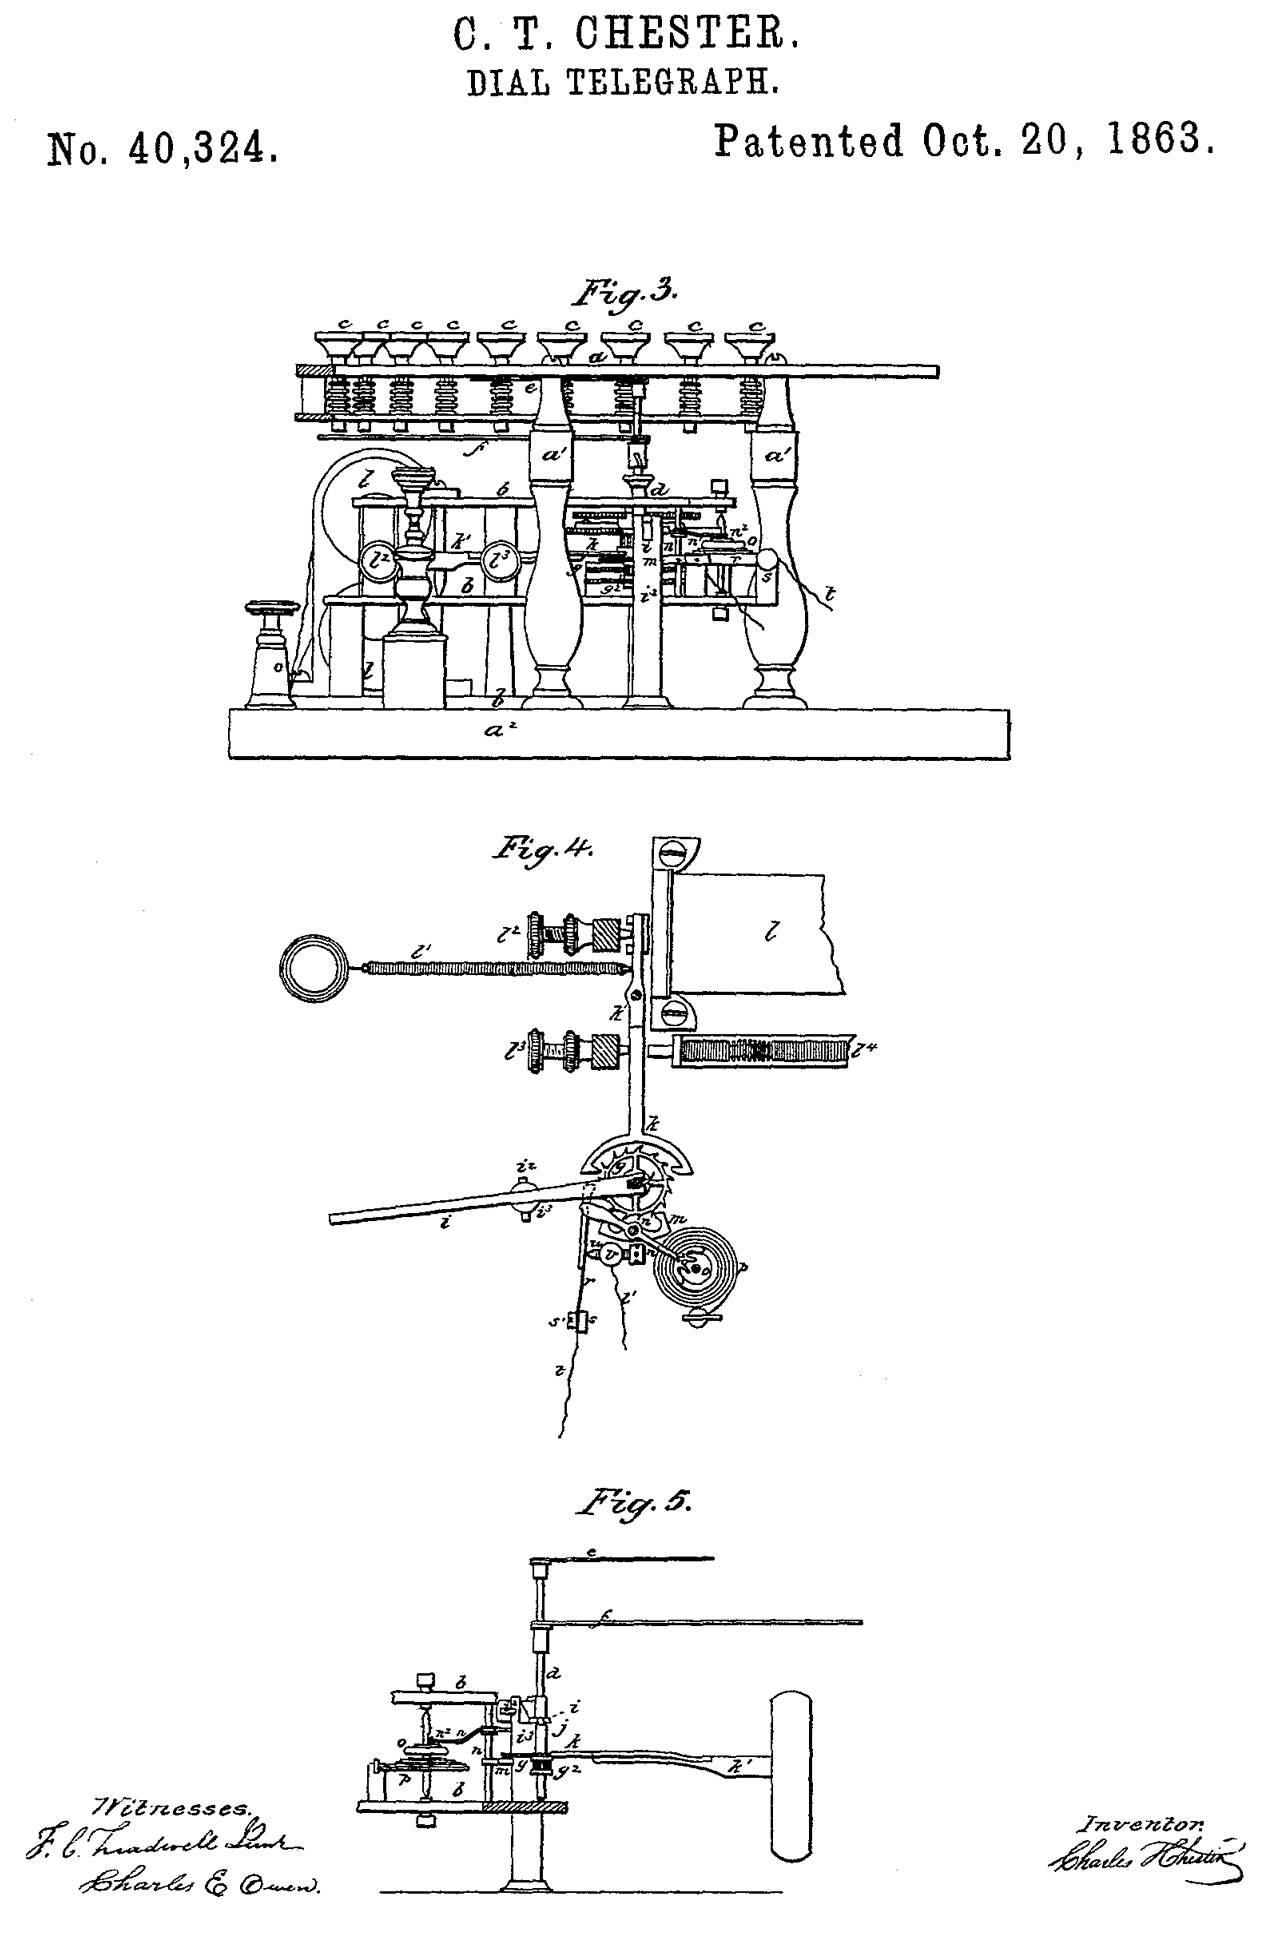 hight resolution of 40324 dial telegraph c t chester